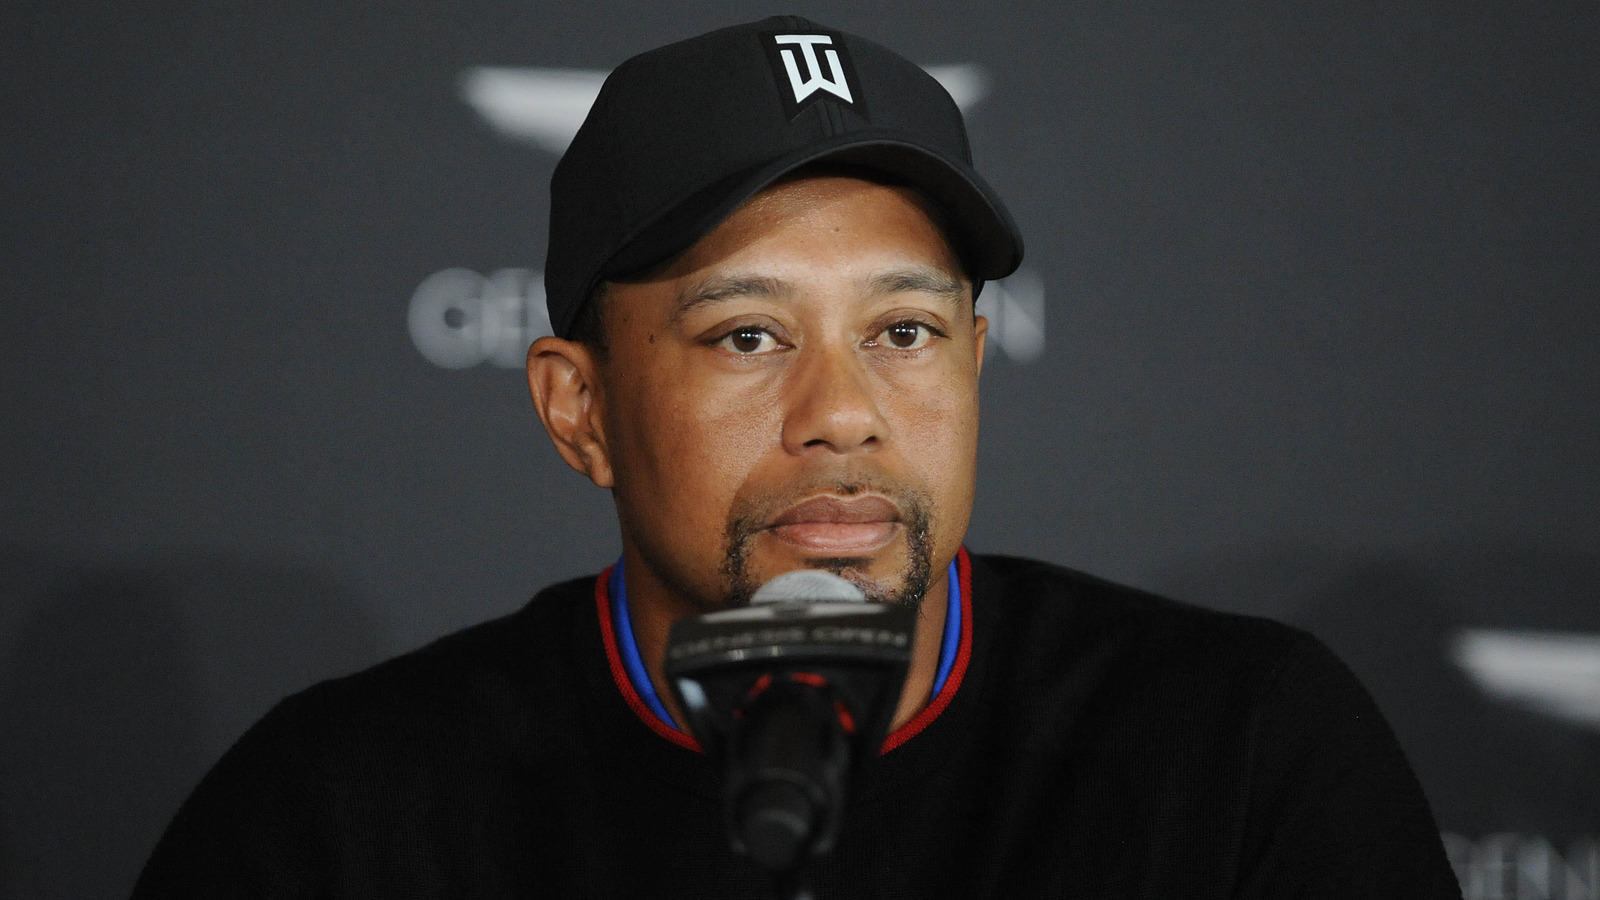 Tiger Woods has funny response to question about going bald